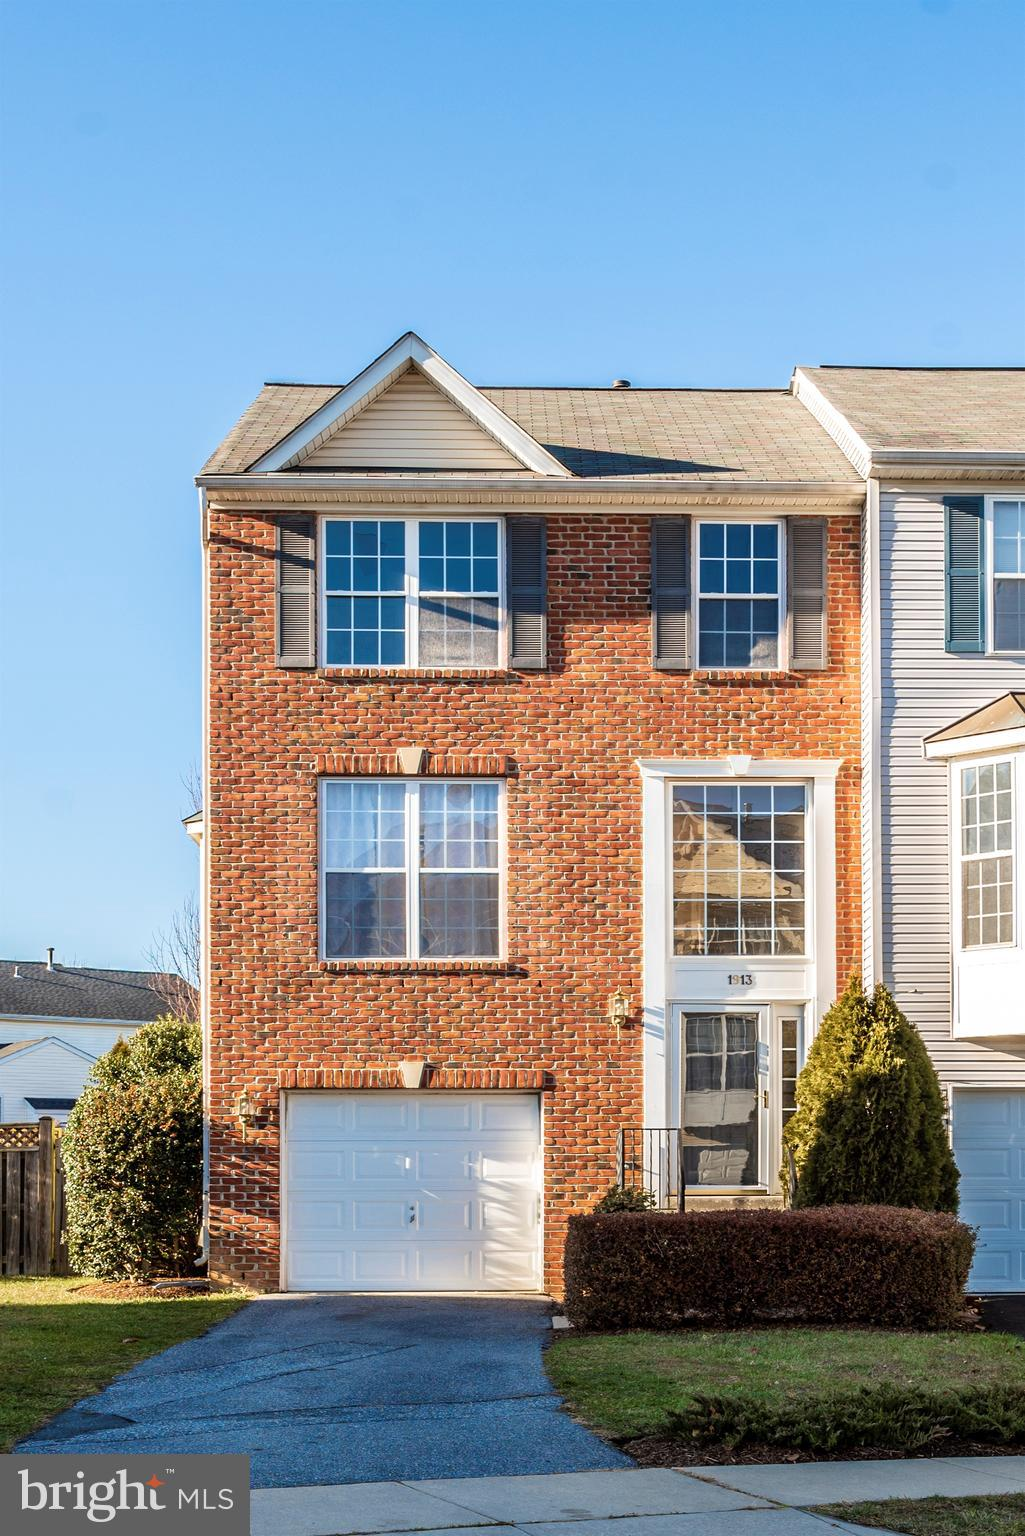 Move in ready! Welcome to this 3 bedroom, 2 1/2 bathroom brick front end unit with garage. This town